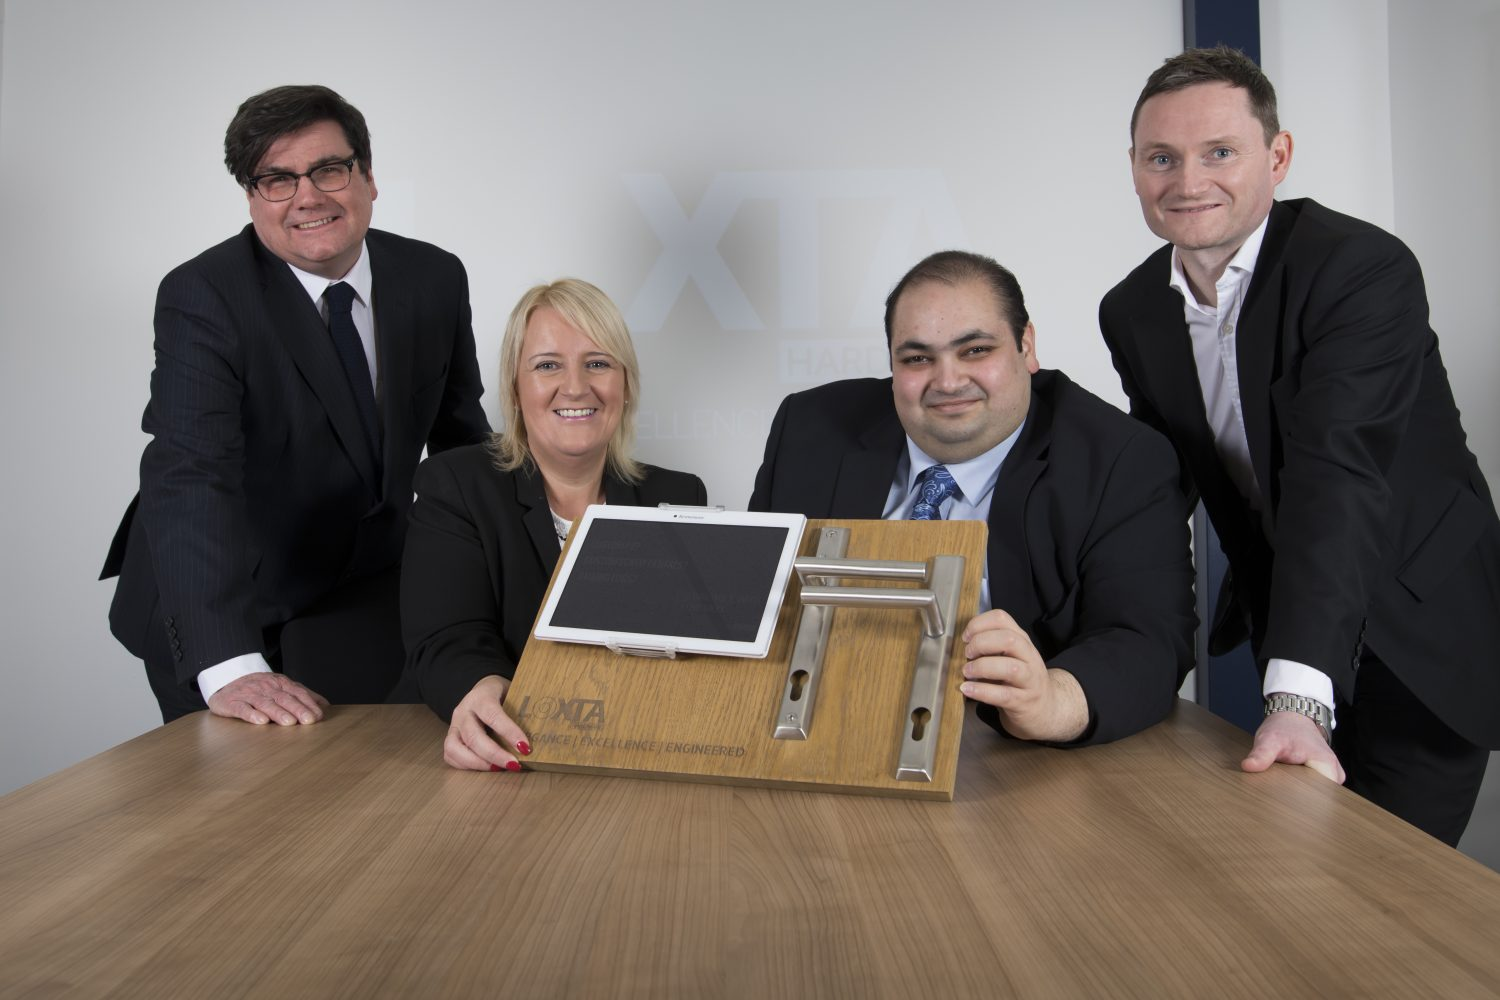 Four people around a desk. Man to the far right is wearing a black suit is standing, next to him is a seated man with his hand holding some equipment. There is a blond haired woman also holding the equipment. To the far left is man standing wearing glasses and a black tie.